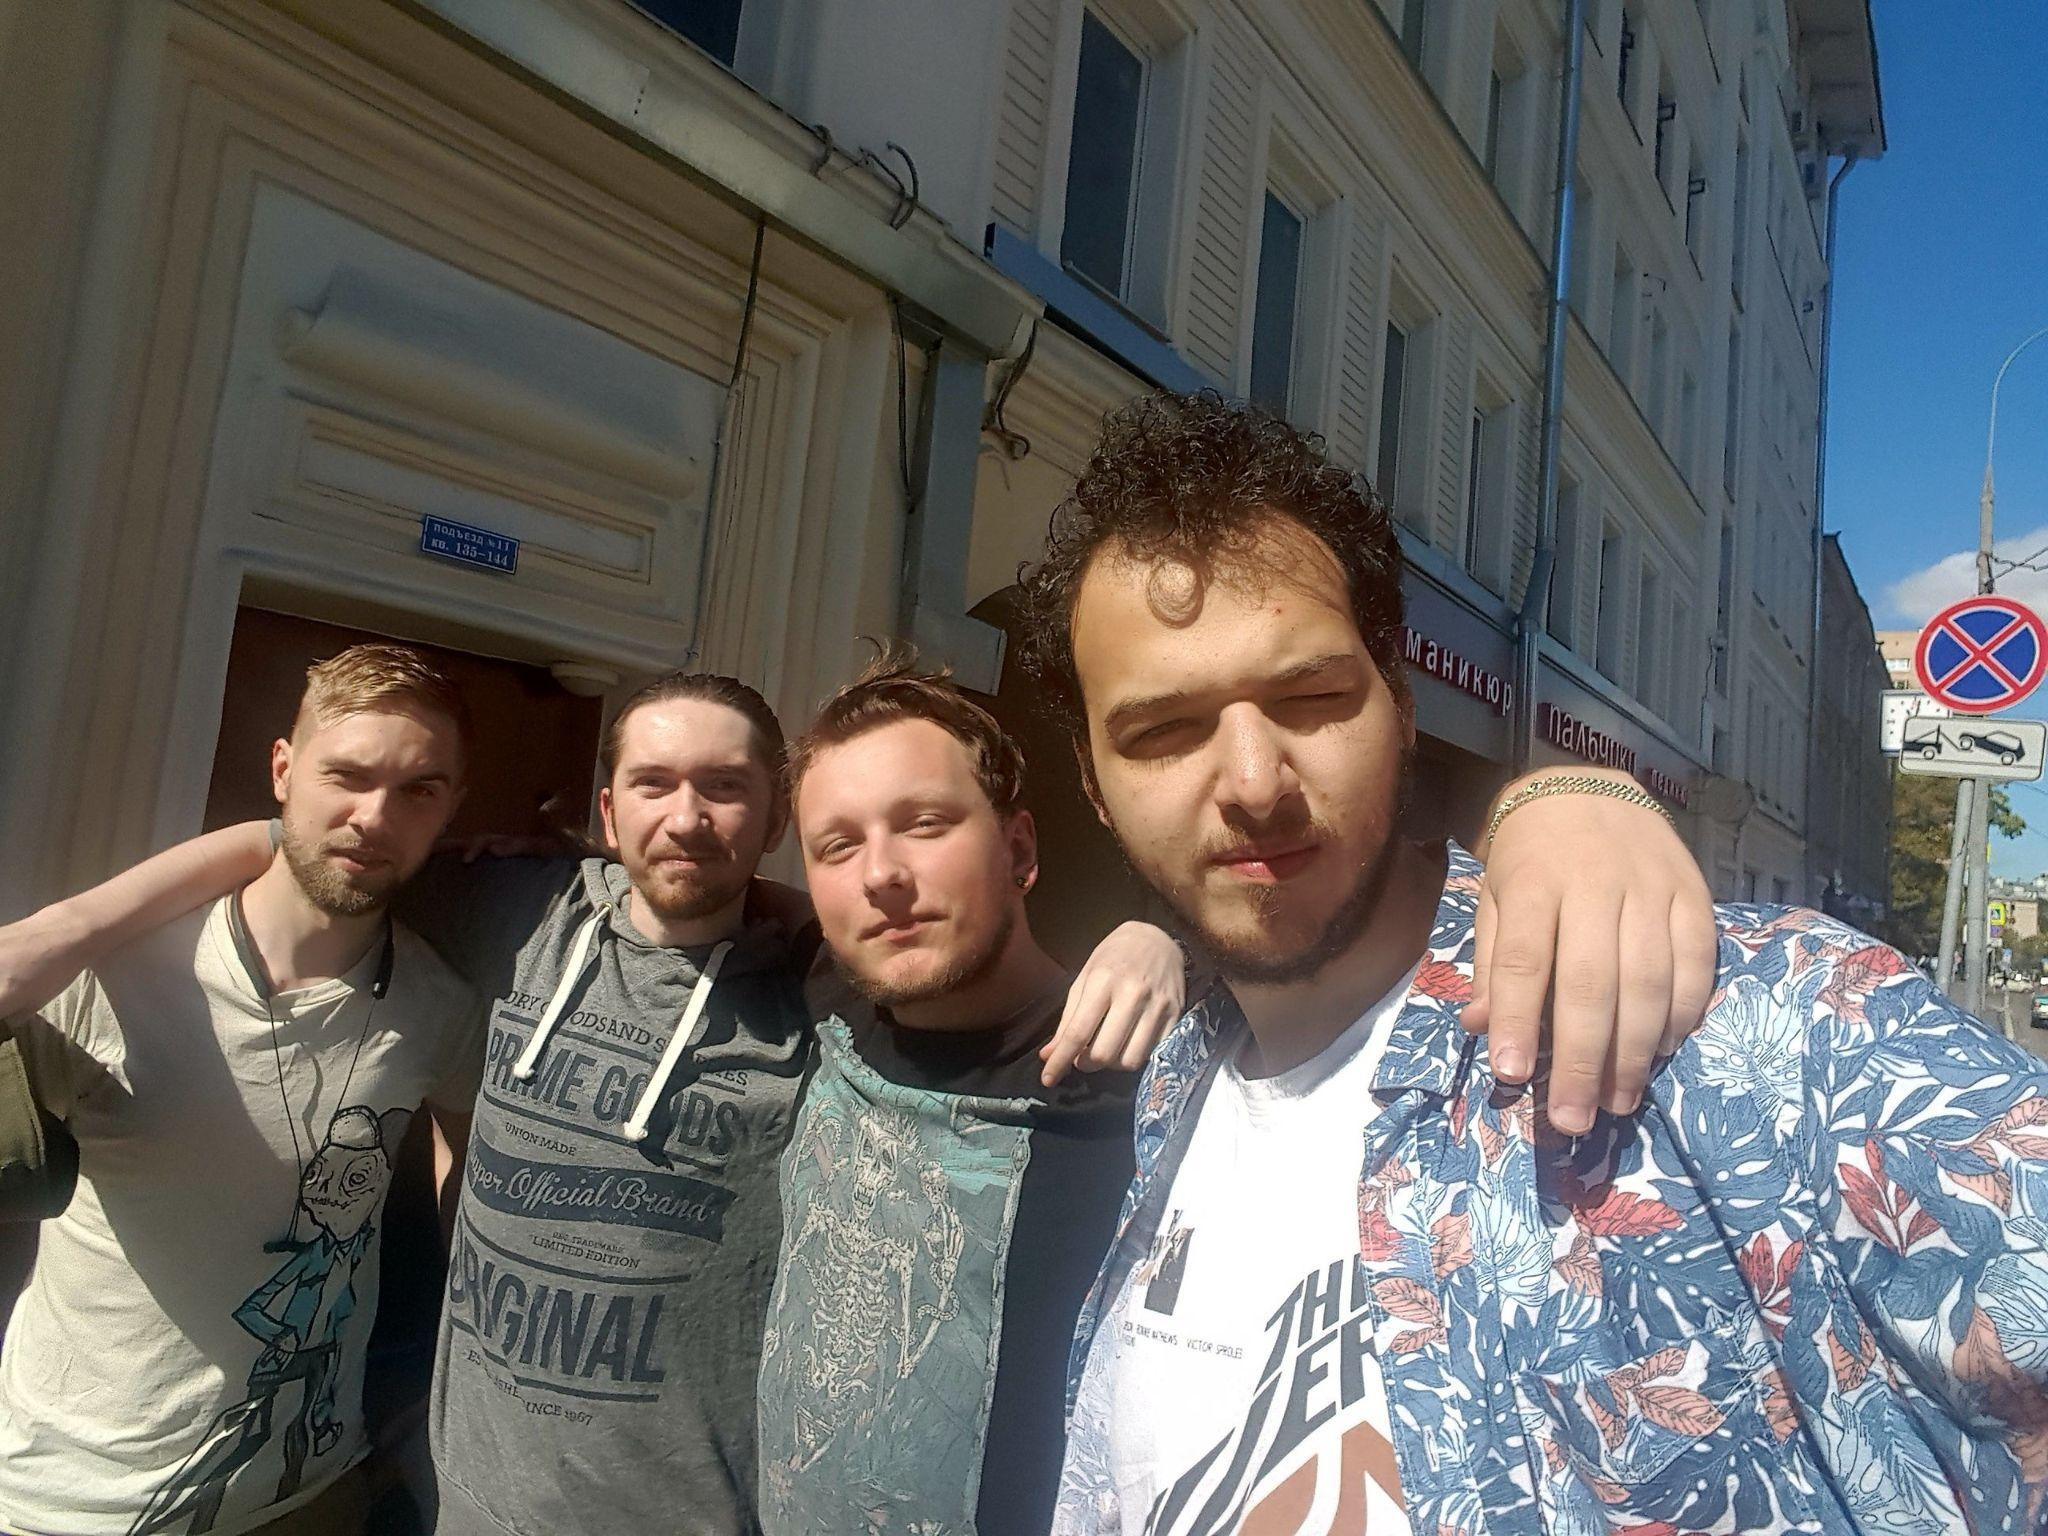 Four individuals pose for a picture together outside near a building.